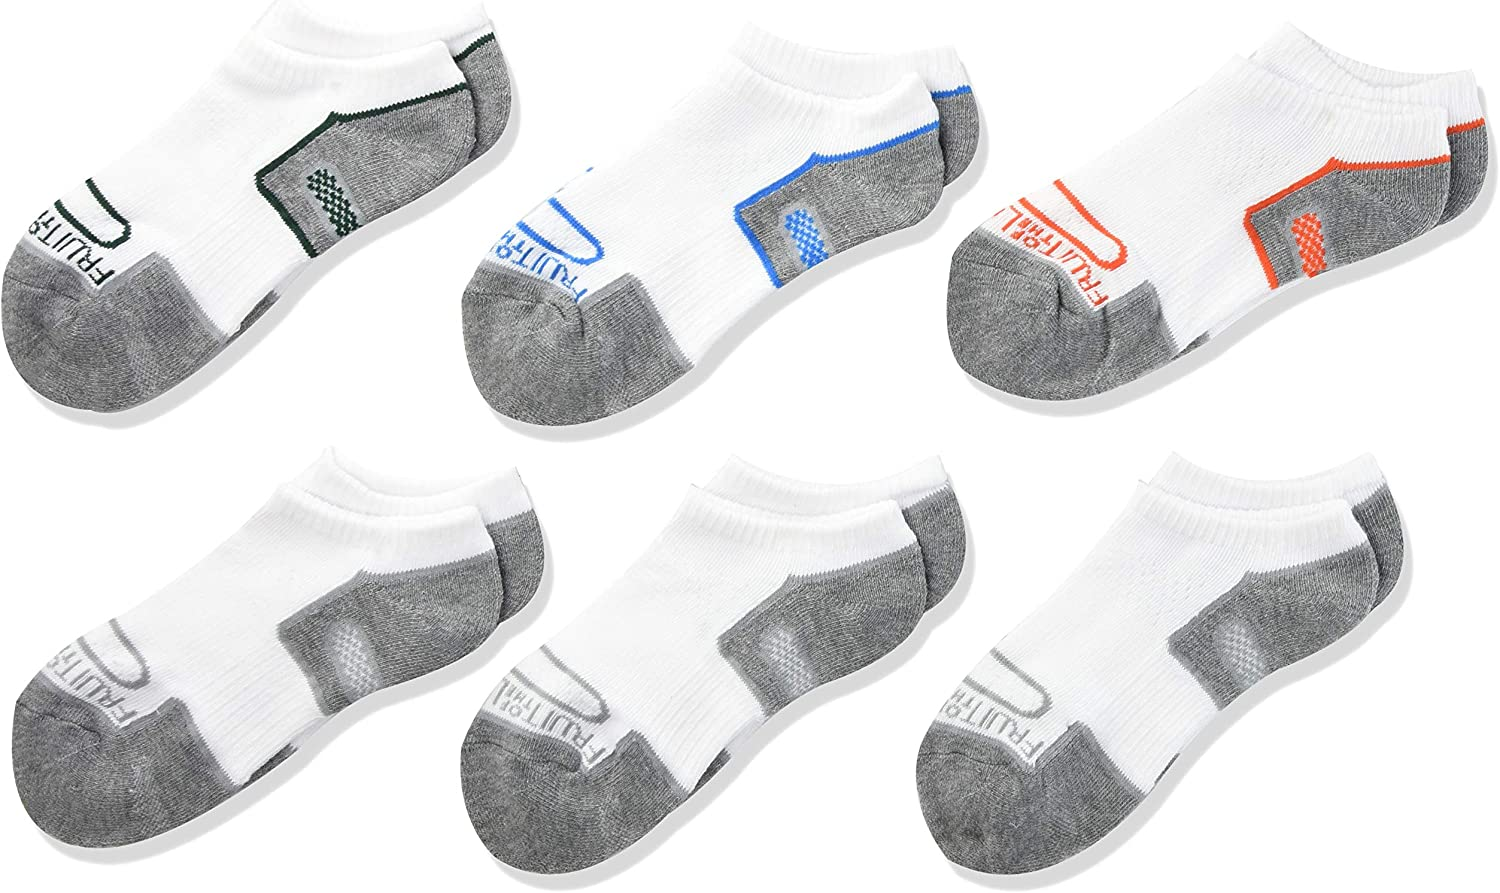 Fruit of the Loom Boy's Coolzone Cushioned Socks - 6 Pair Pack